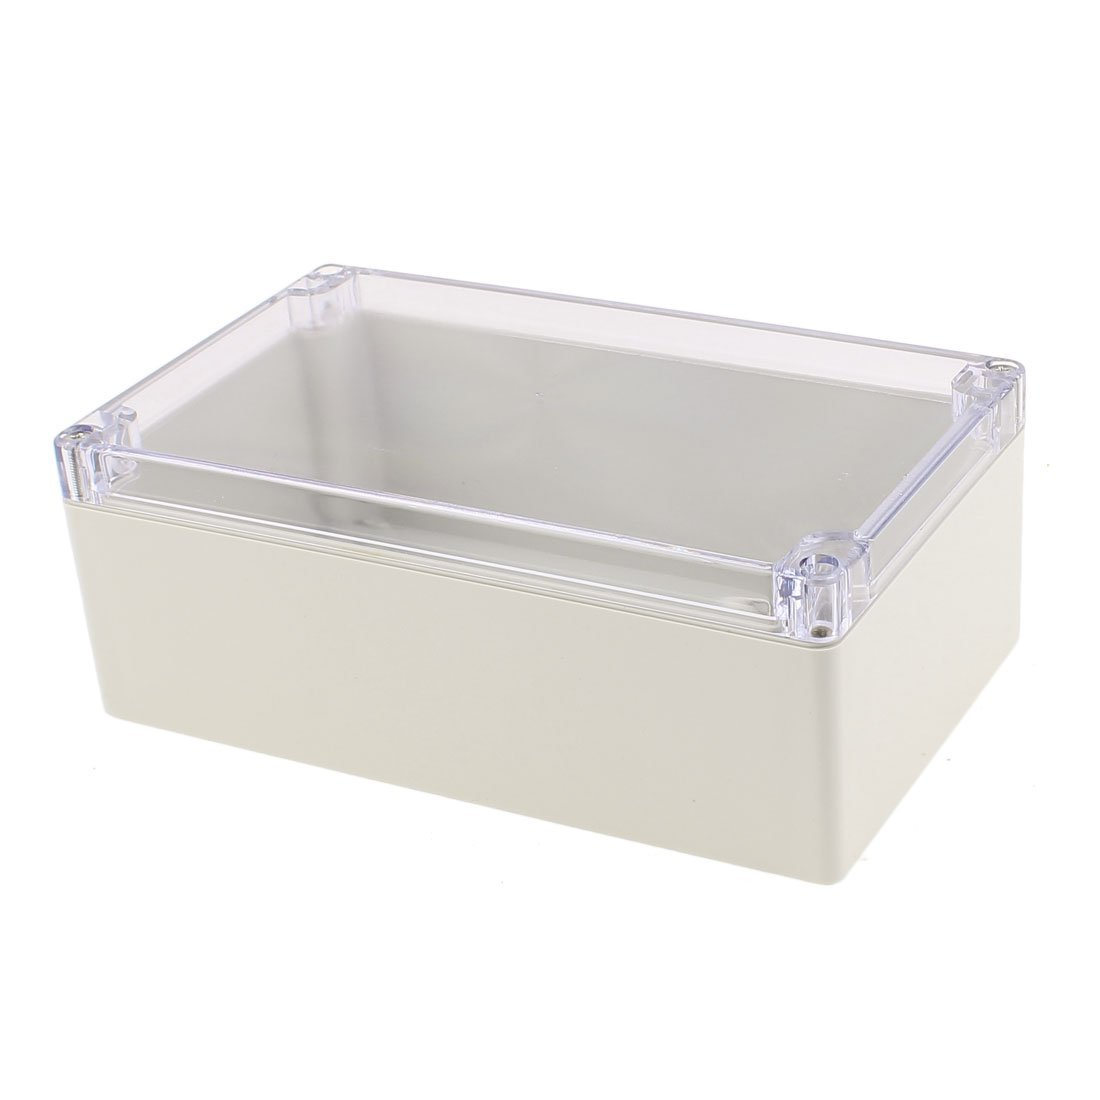 Amazon.com: eDealMax 200 x 120 x 75 mm cubierta transparente caja sellada a prueba de agua Junction Box Enclosure: Electronics